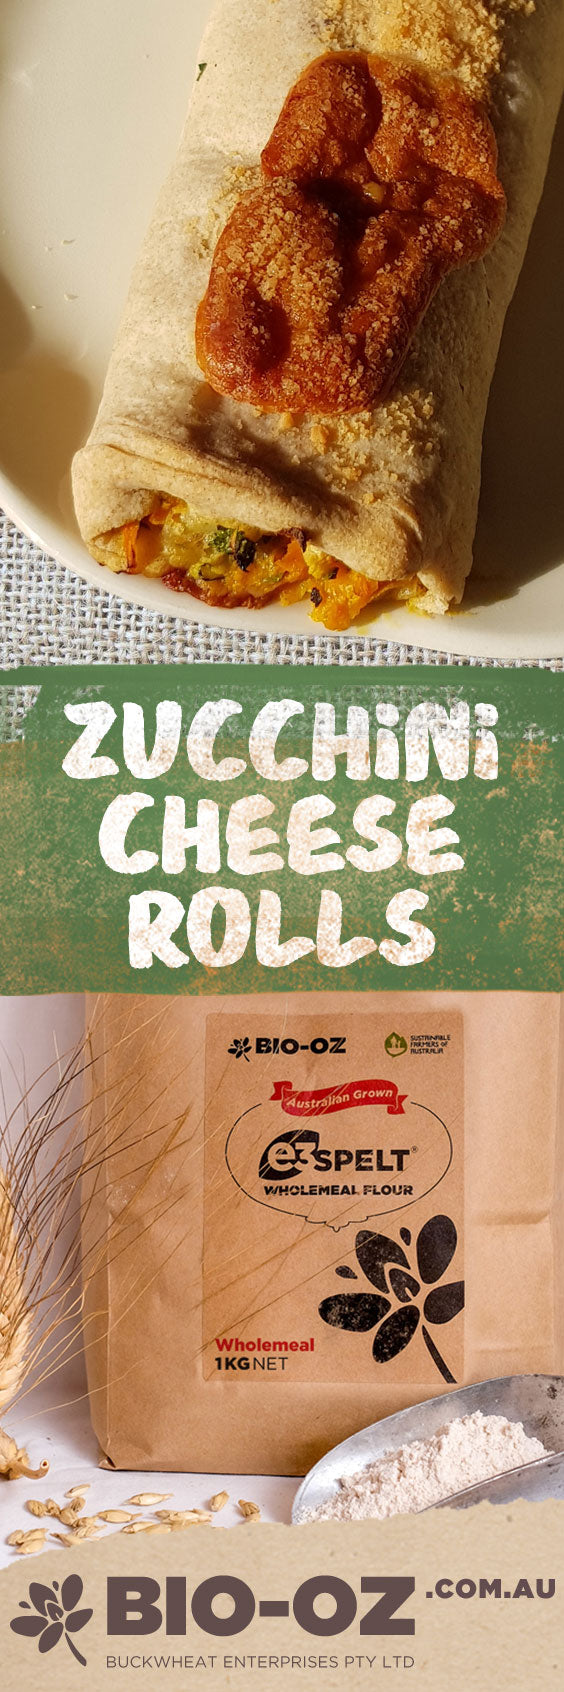 Zucchini Cheese Rolls with Wholemeal e3 Spelt